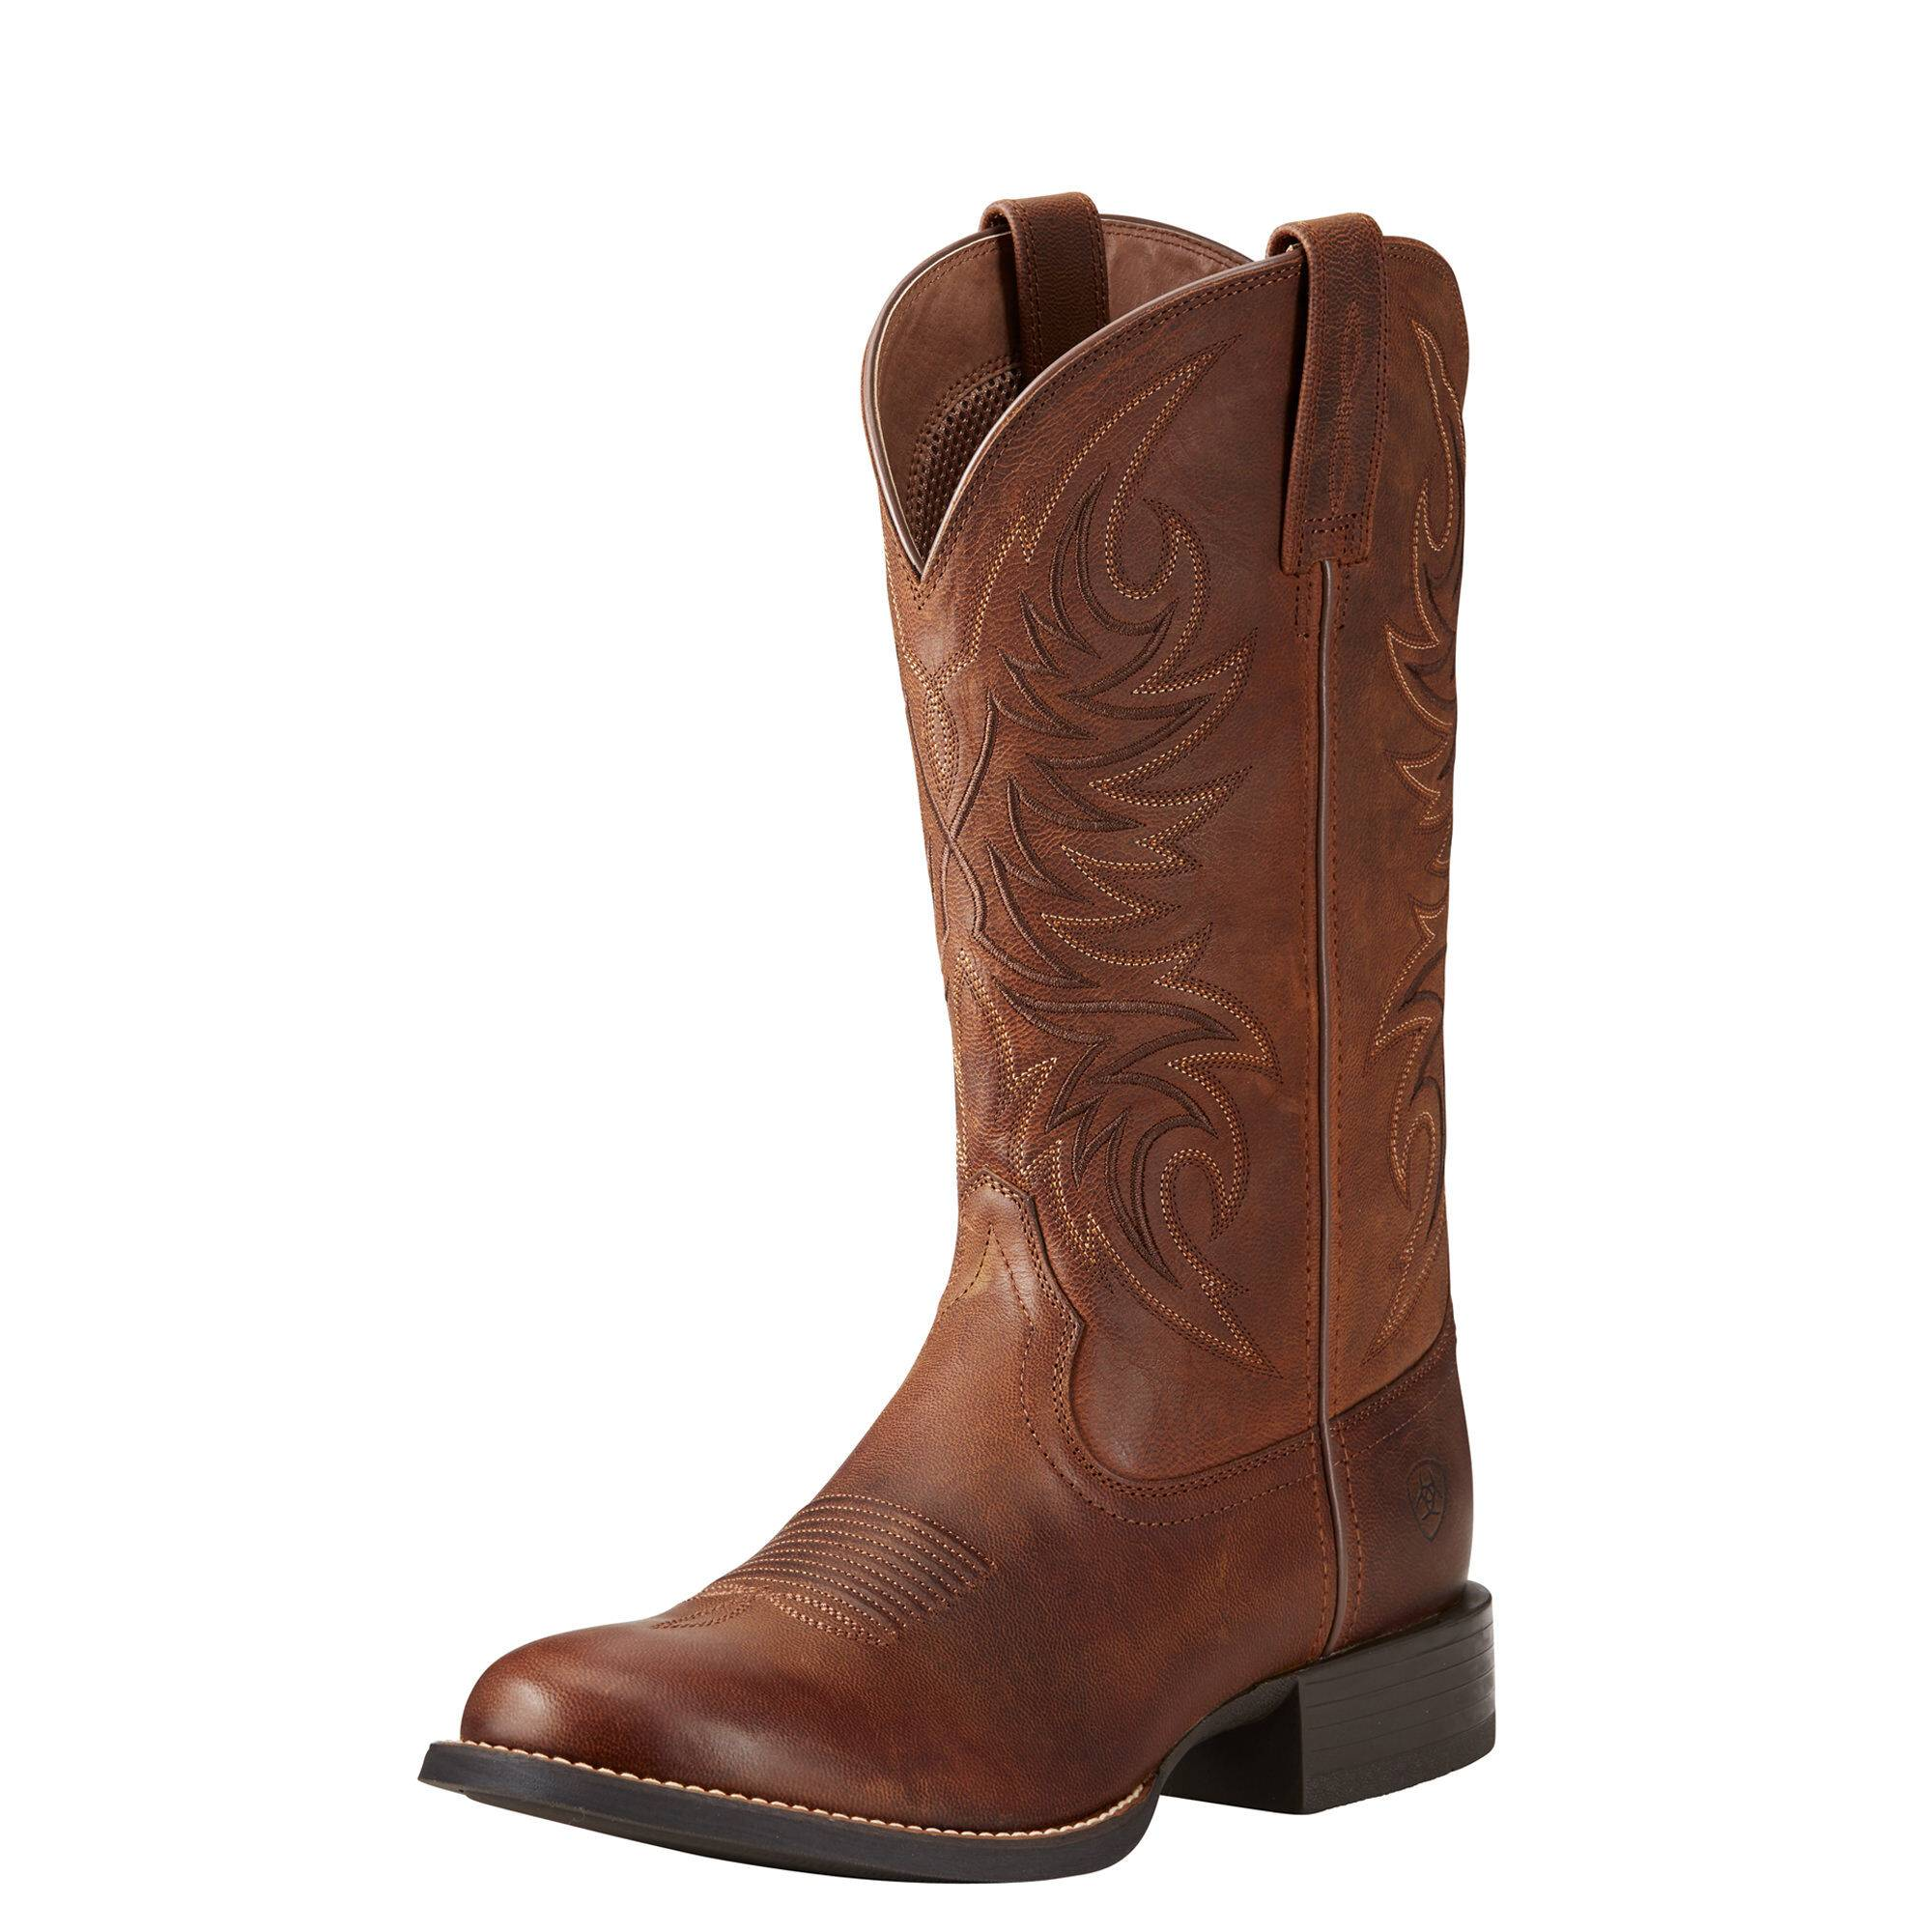 Ariat Men's Sport Horseman Western Boots in Rafter Tan Leather, Size 7.5 D / Medium by Ariat